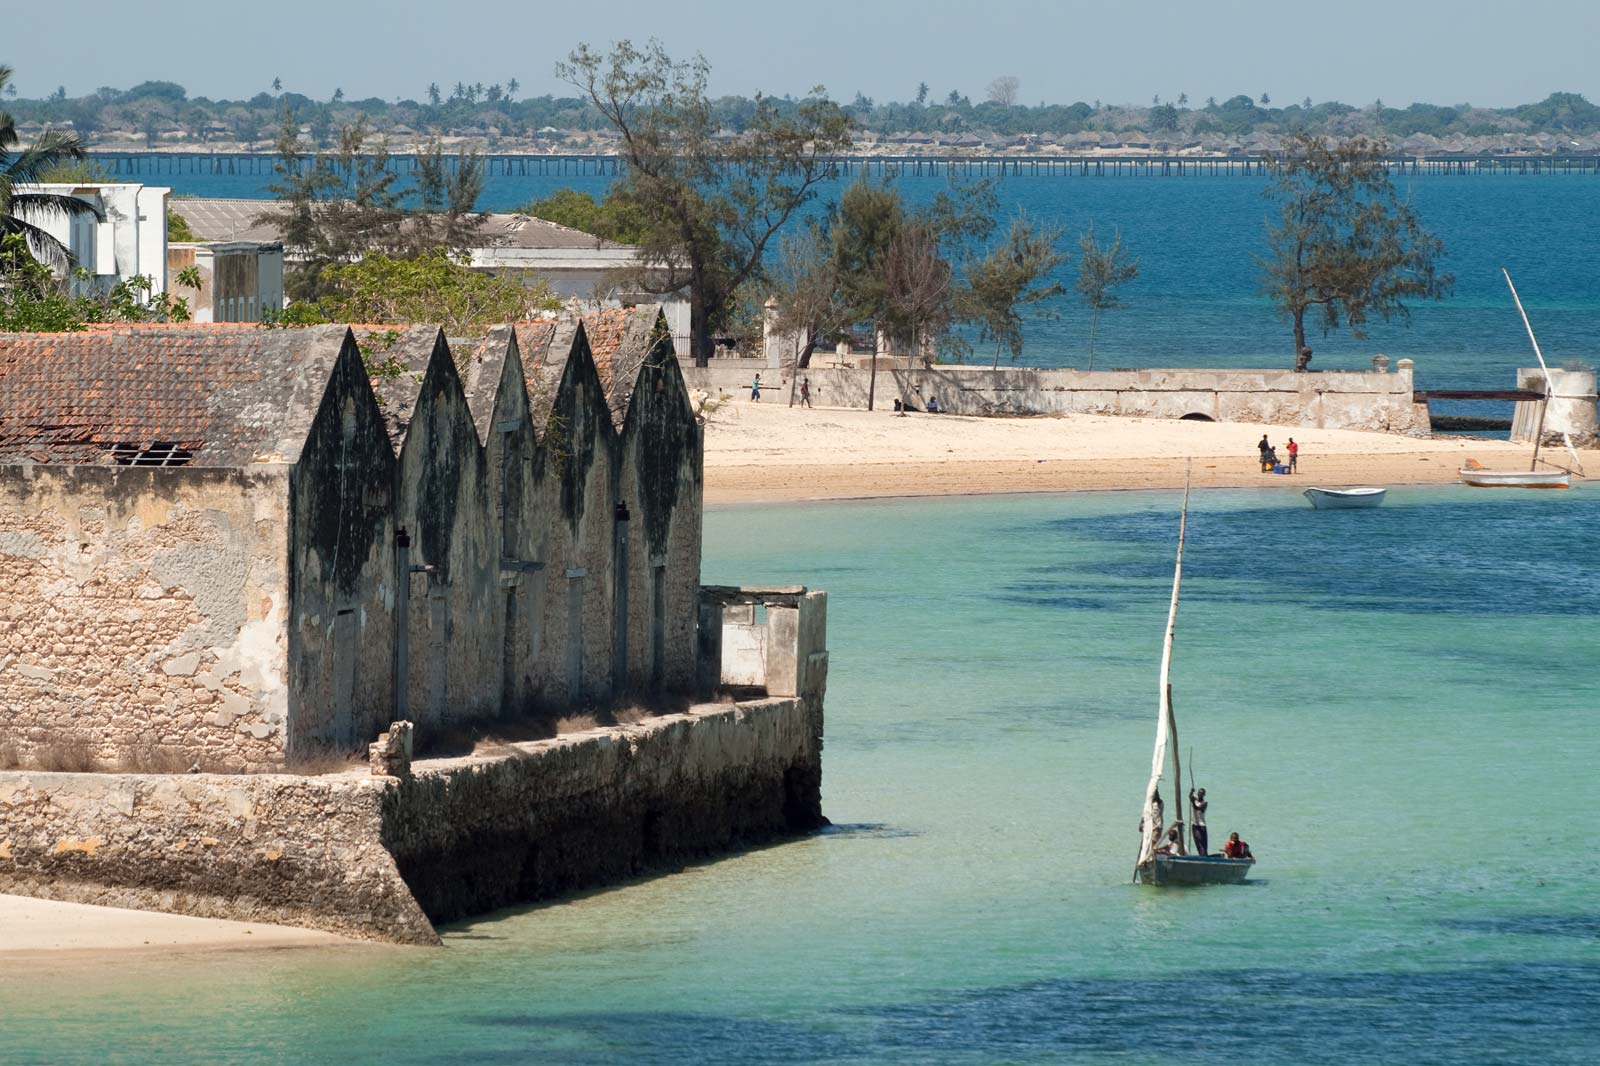 dhow-sailing-coast-Island-of-Mozambique